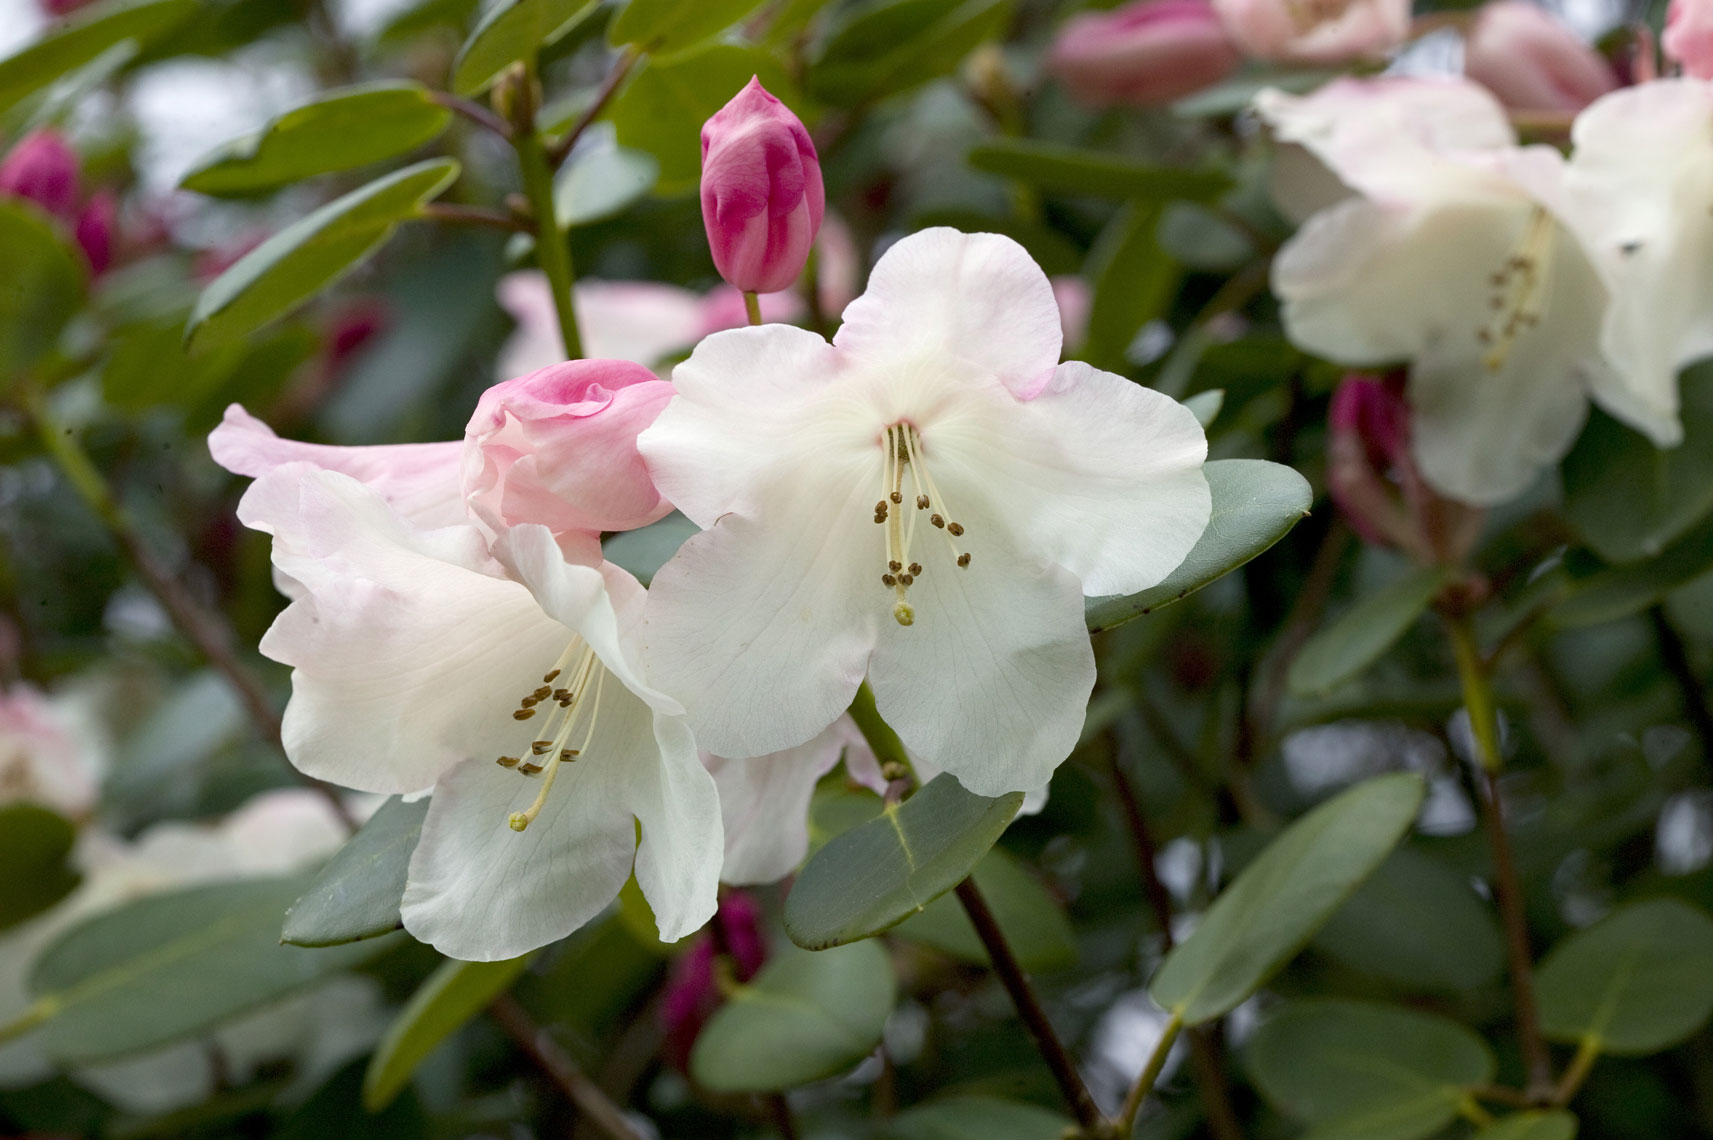 Rhododendron-Willy-C07S3715